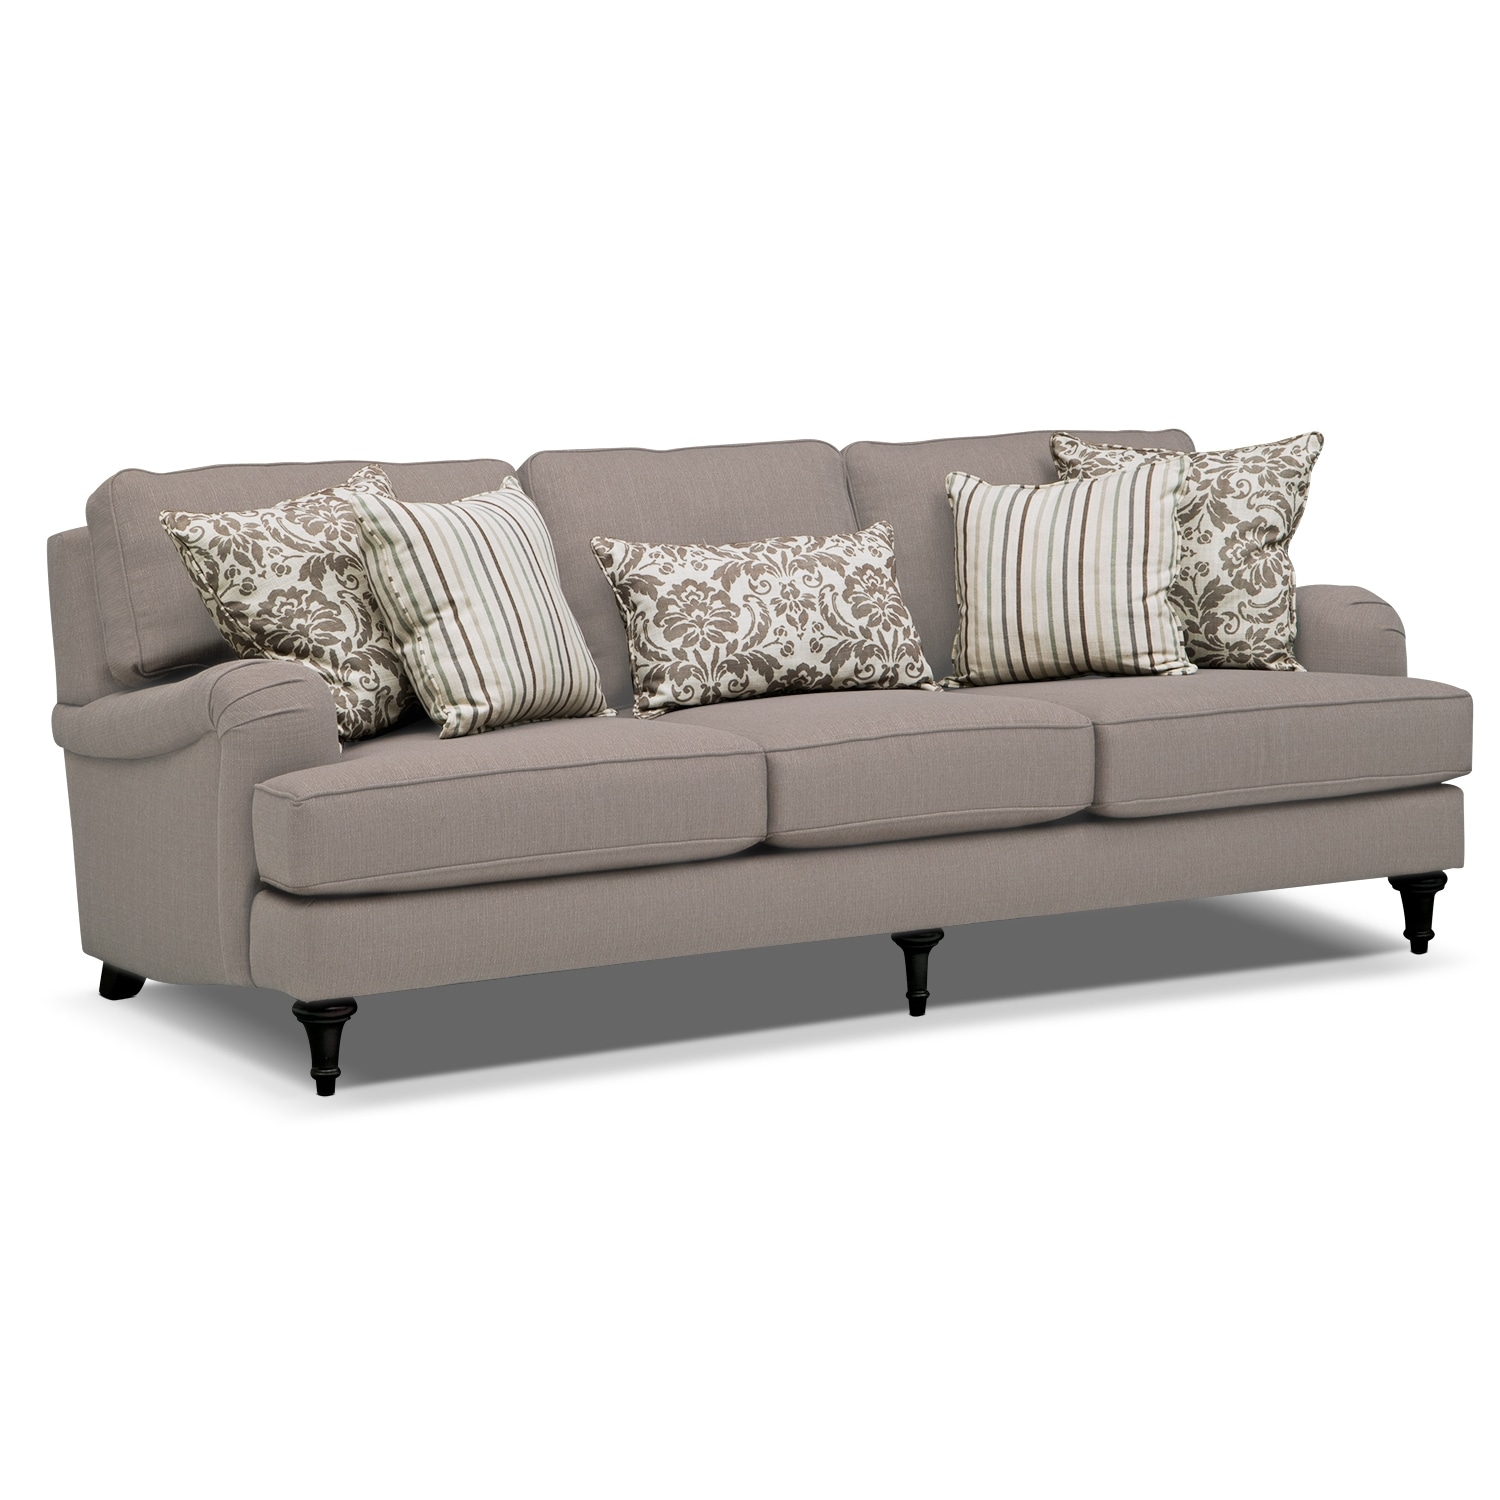 Candice sofa value city furniture for Furniture furniture